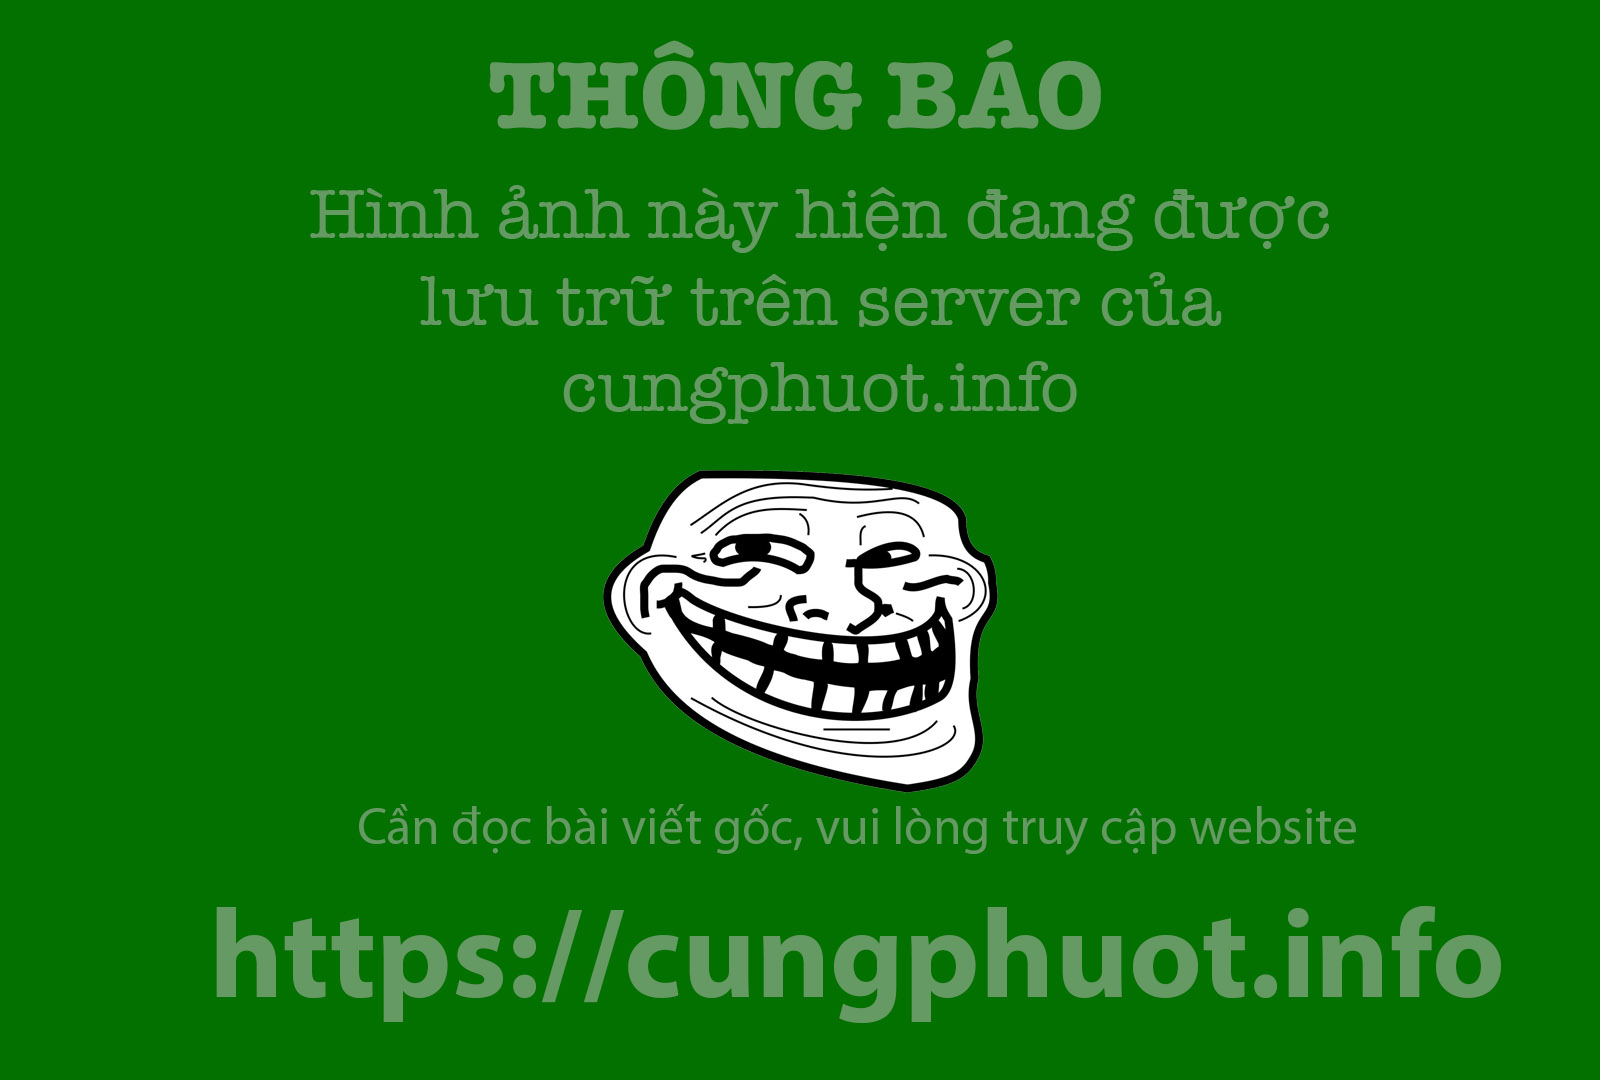 May von nui tren cong troi Muong Long hinh anh 4